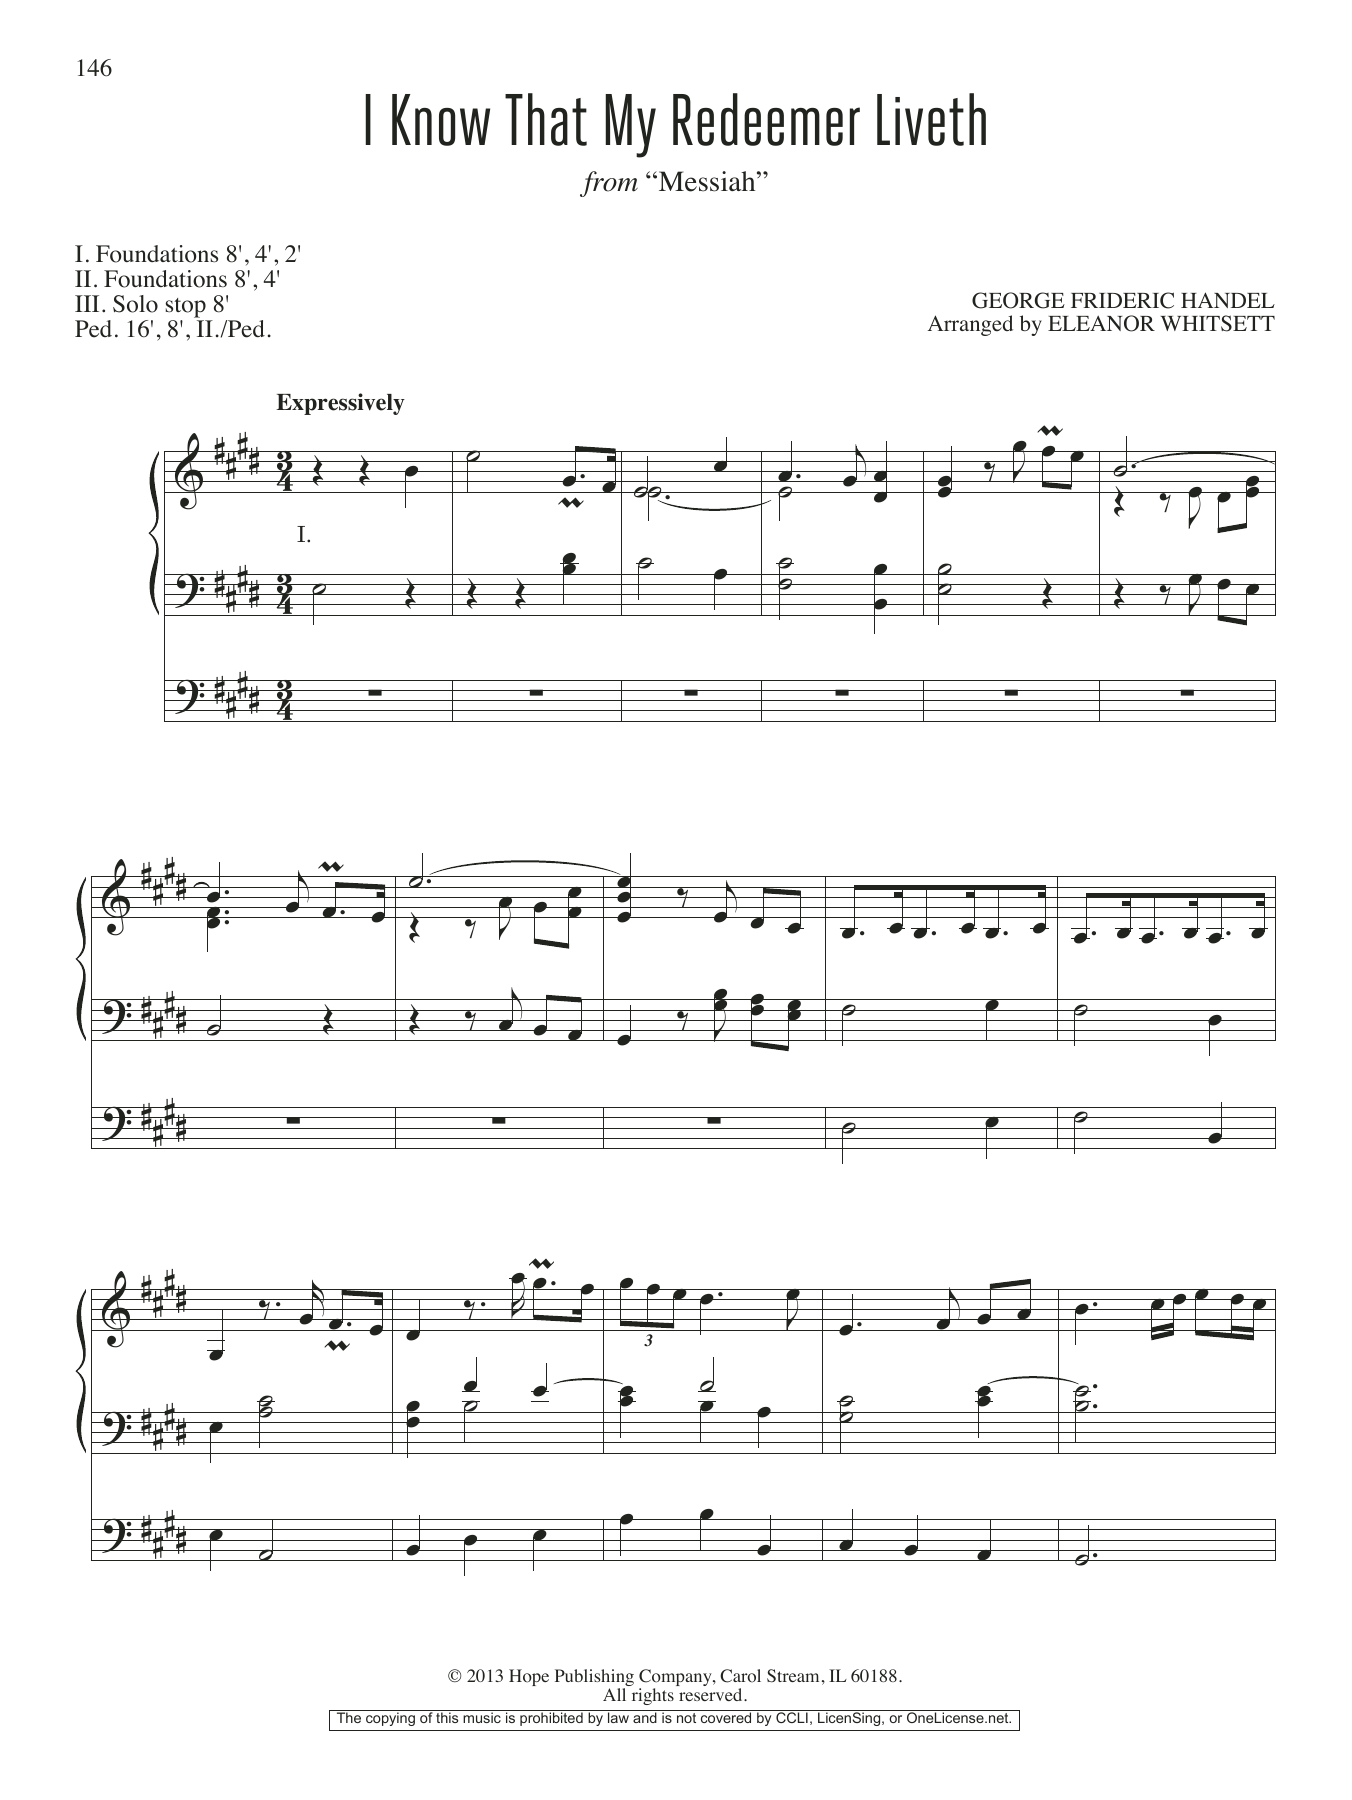 Eleanor Whitsett I Know That My Redeemer Liveth sheet music notes and chords. Download Printable PDF.